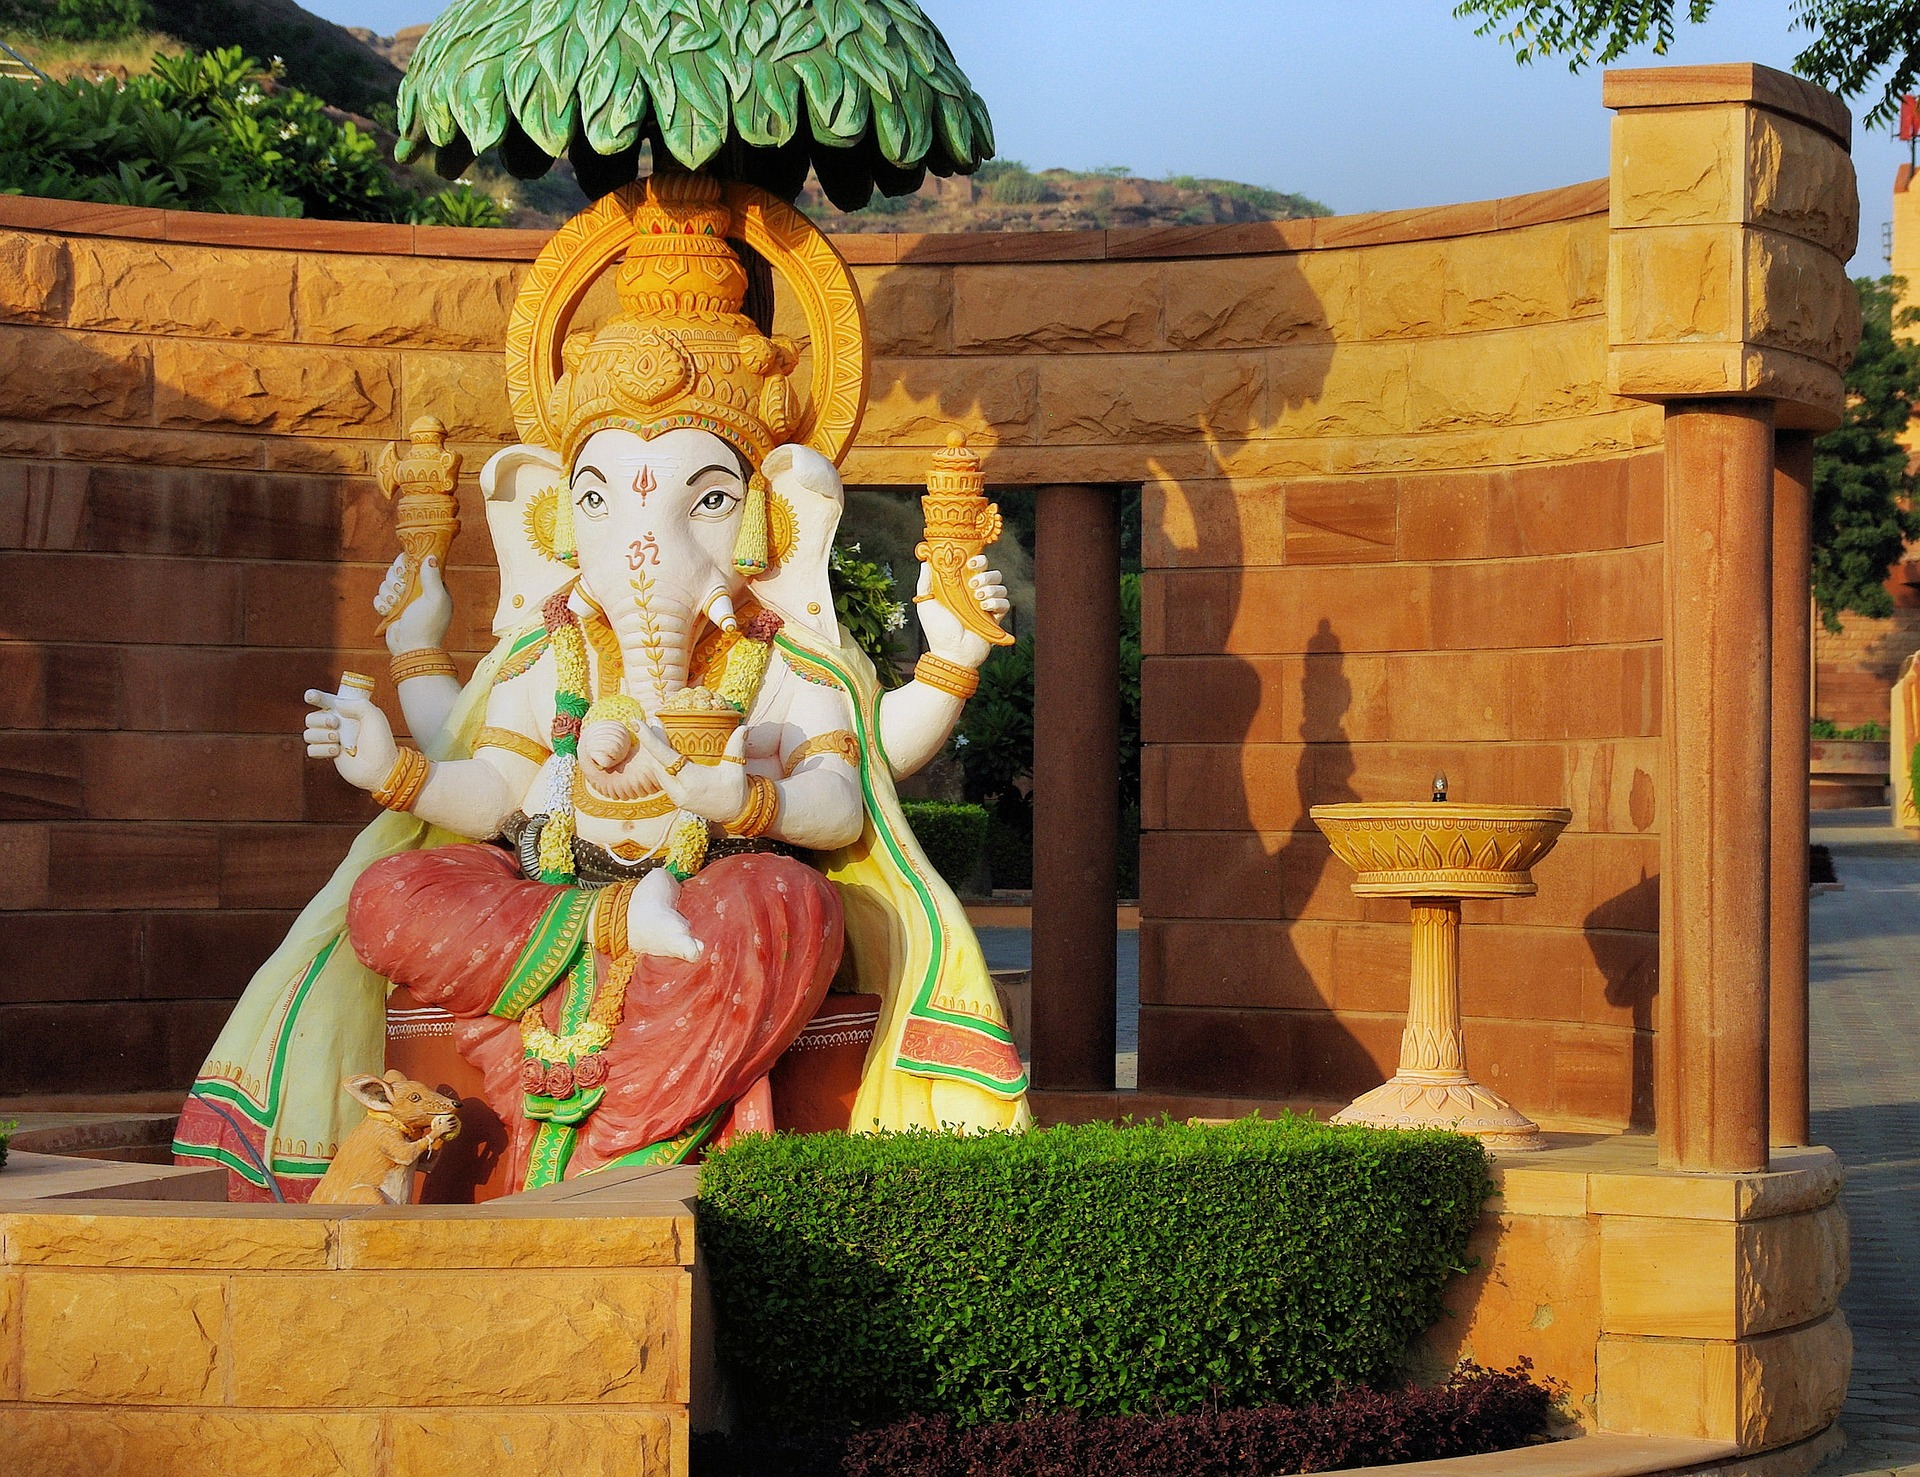 Compare And Contrast High School And College Essay Ganpati Bappa Morya Ganesh Chaturthi Is Here Public Health Essay also Example Of Essay Proposal Ganpati Bappa Morya Ganesh Chaturthi Is Here  Coconut Creek Essay My Family English